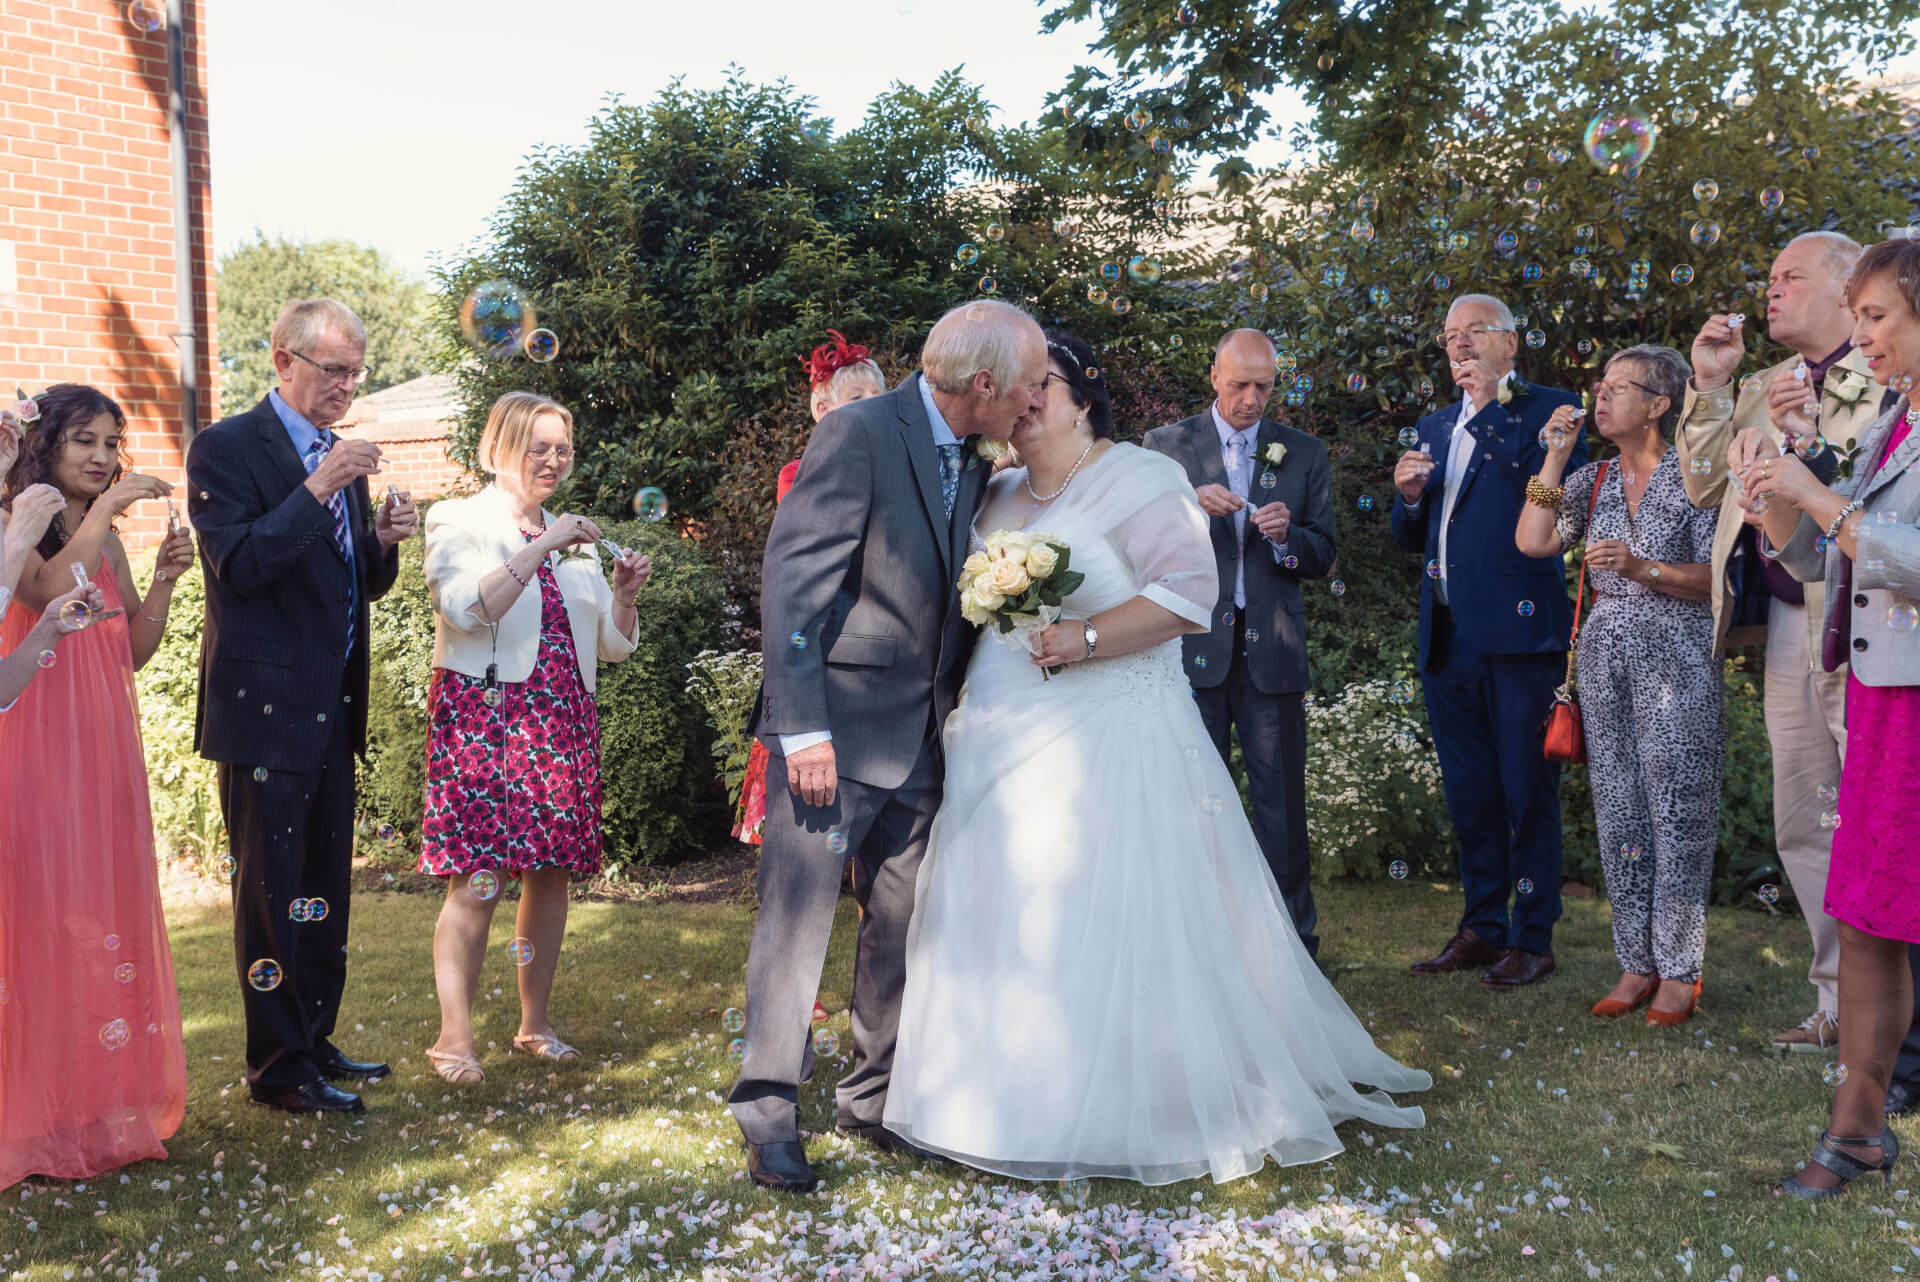 Guests blowing bubbles confetti at Bride and Groom whilst they kiss, at Woodlands Hotel, Spalding - Wedding Photography by Slice of Life